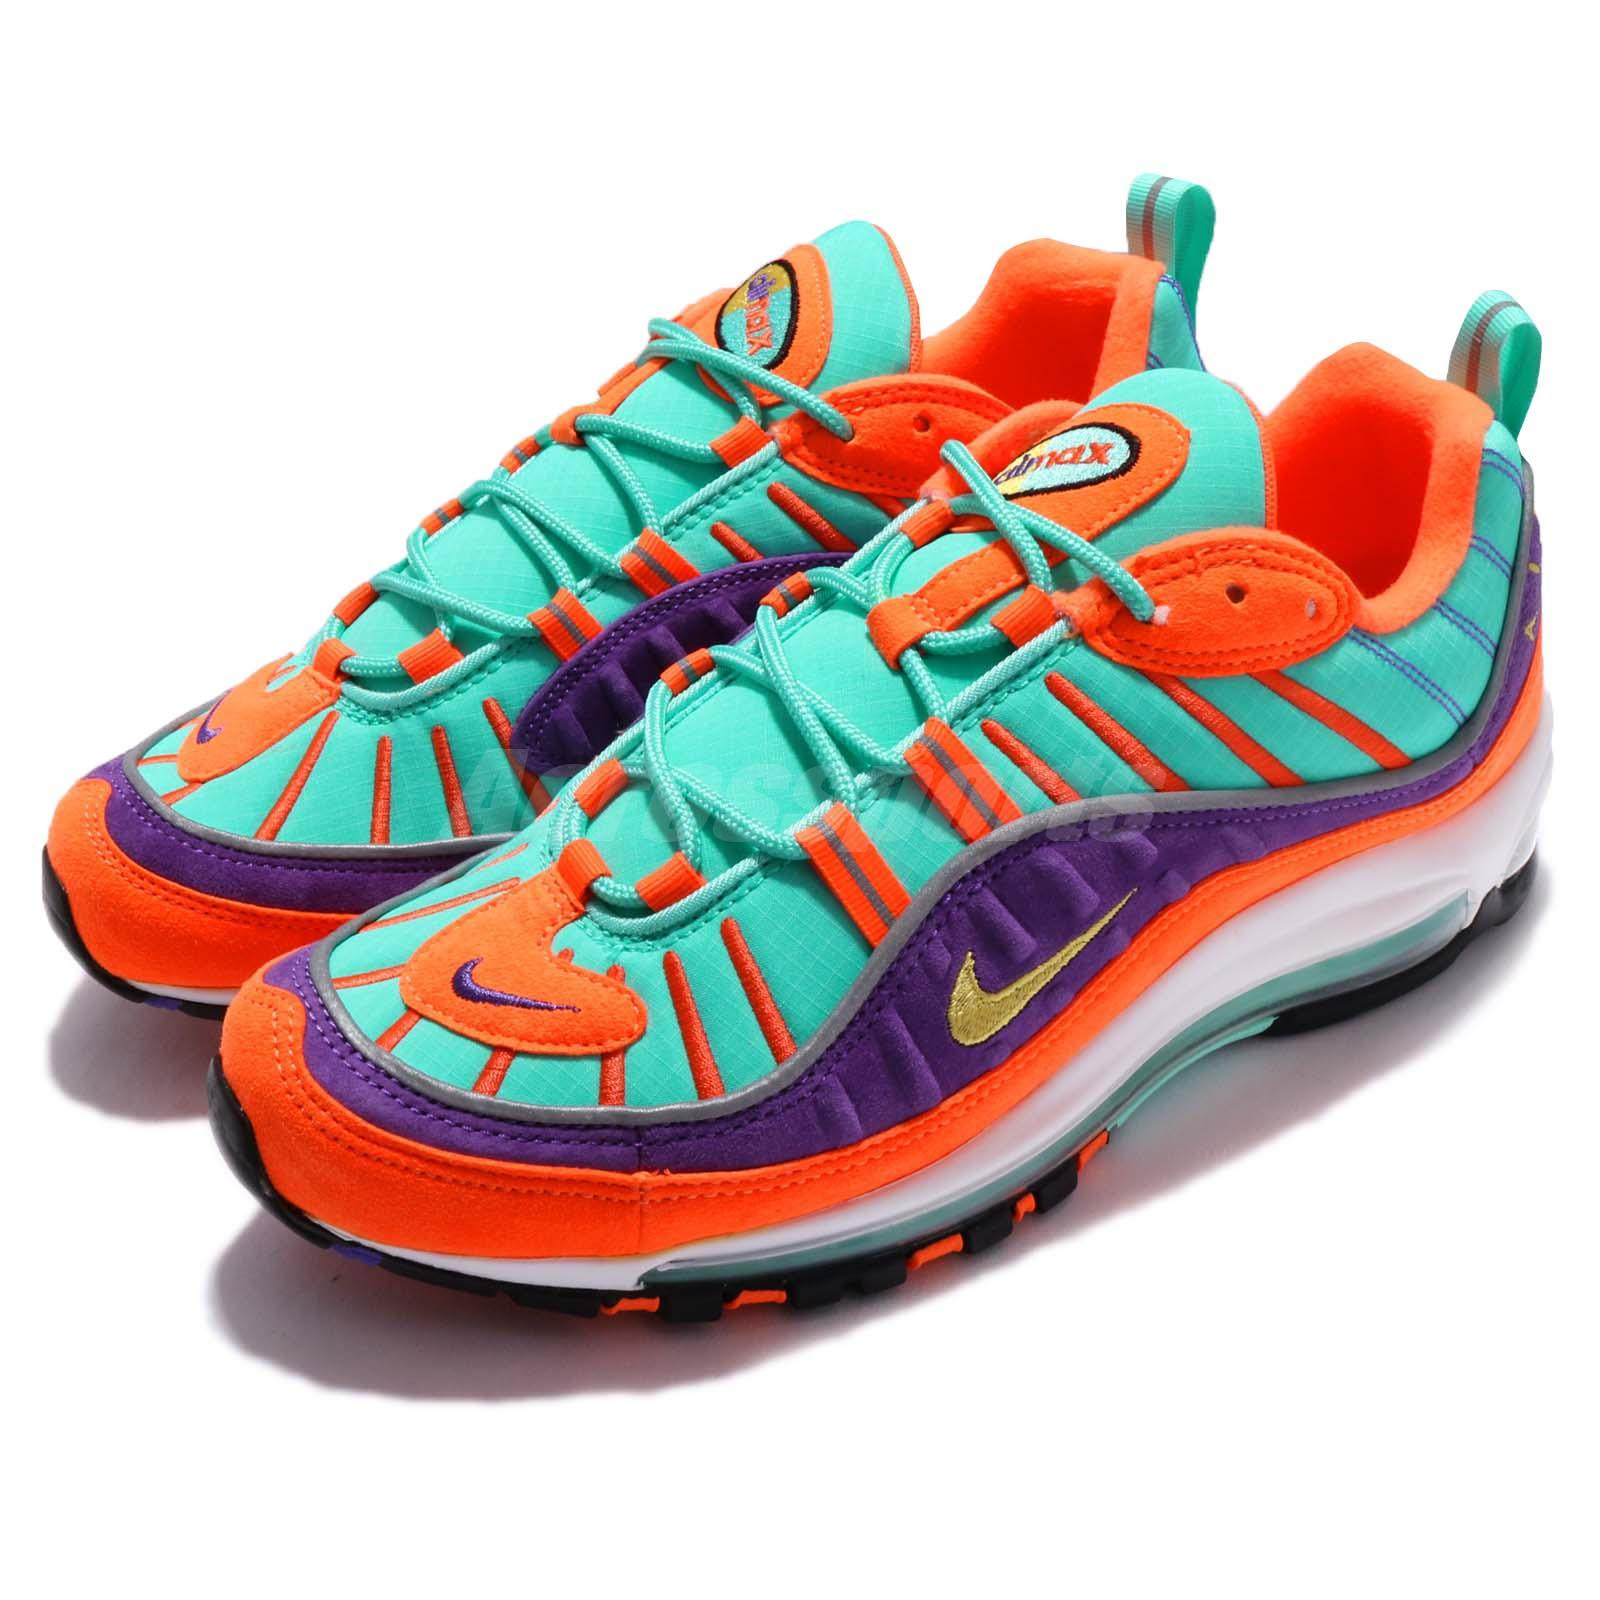 96cb7dcbf9 Details about Nike Air Max 98 QS Cone Vibrant Air Tour Yellow Grape Men  Limited 924462-800